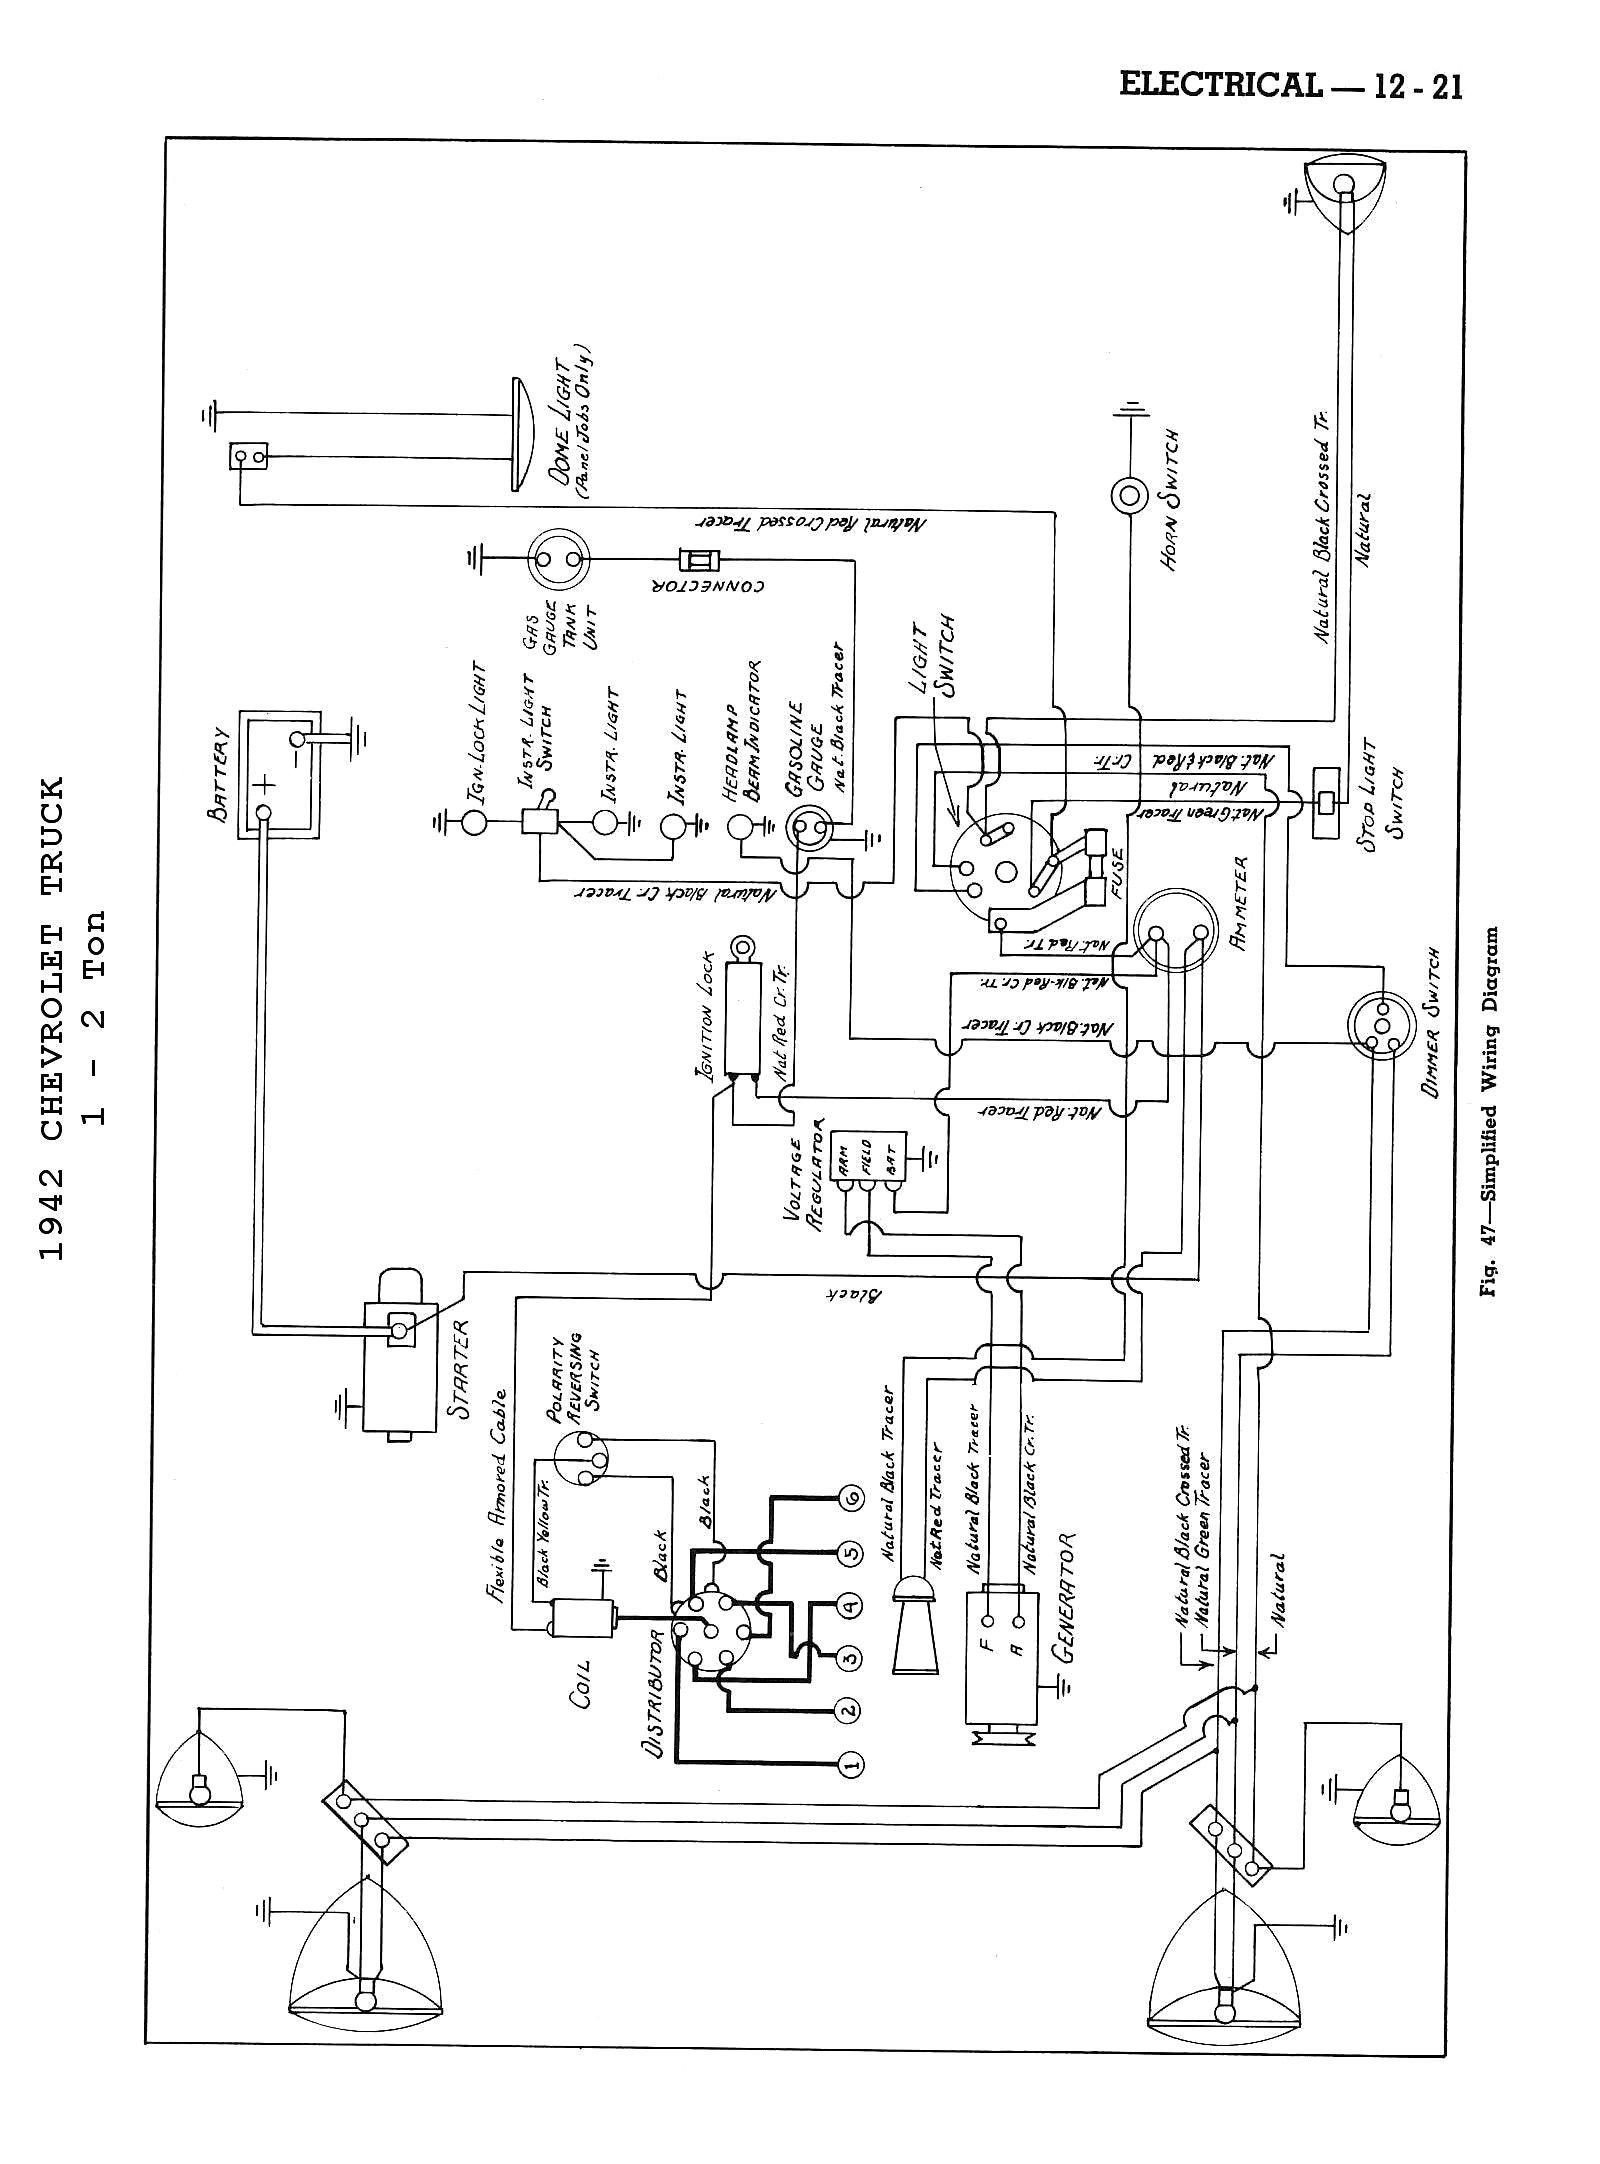 small resolution of suburban water heater wiring diagram kenmore dryer